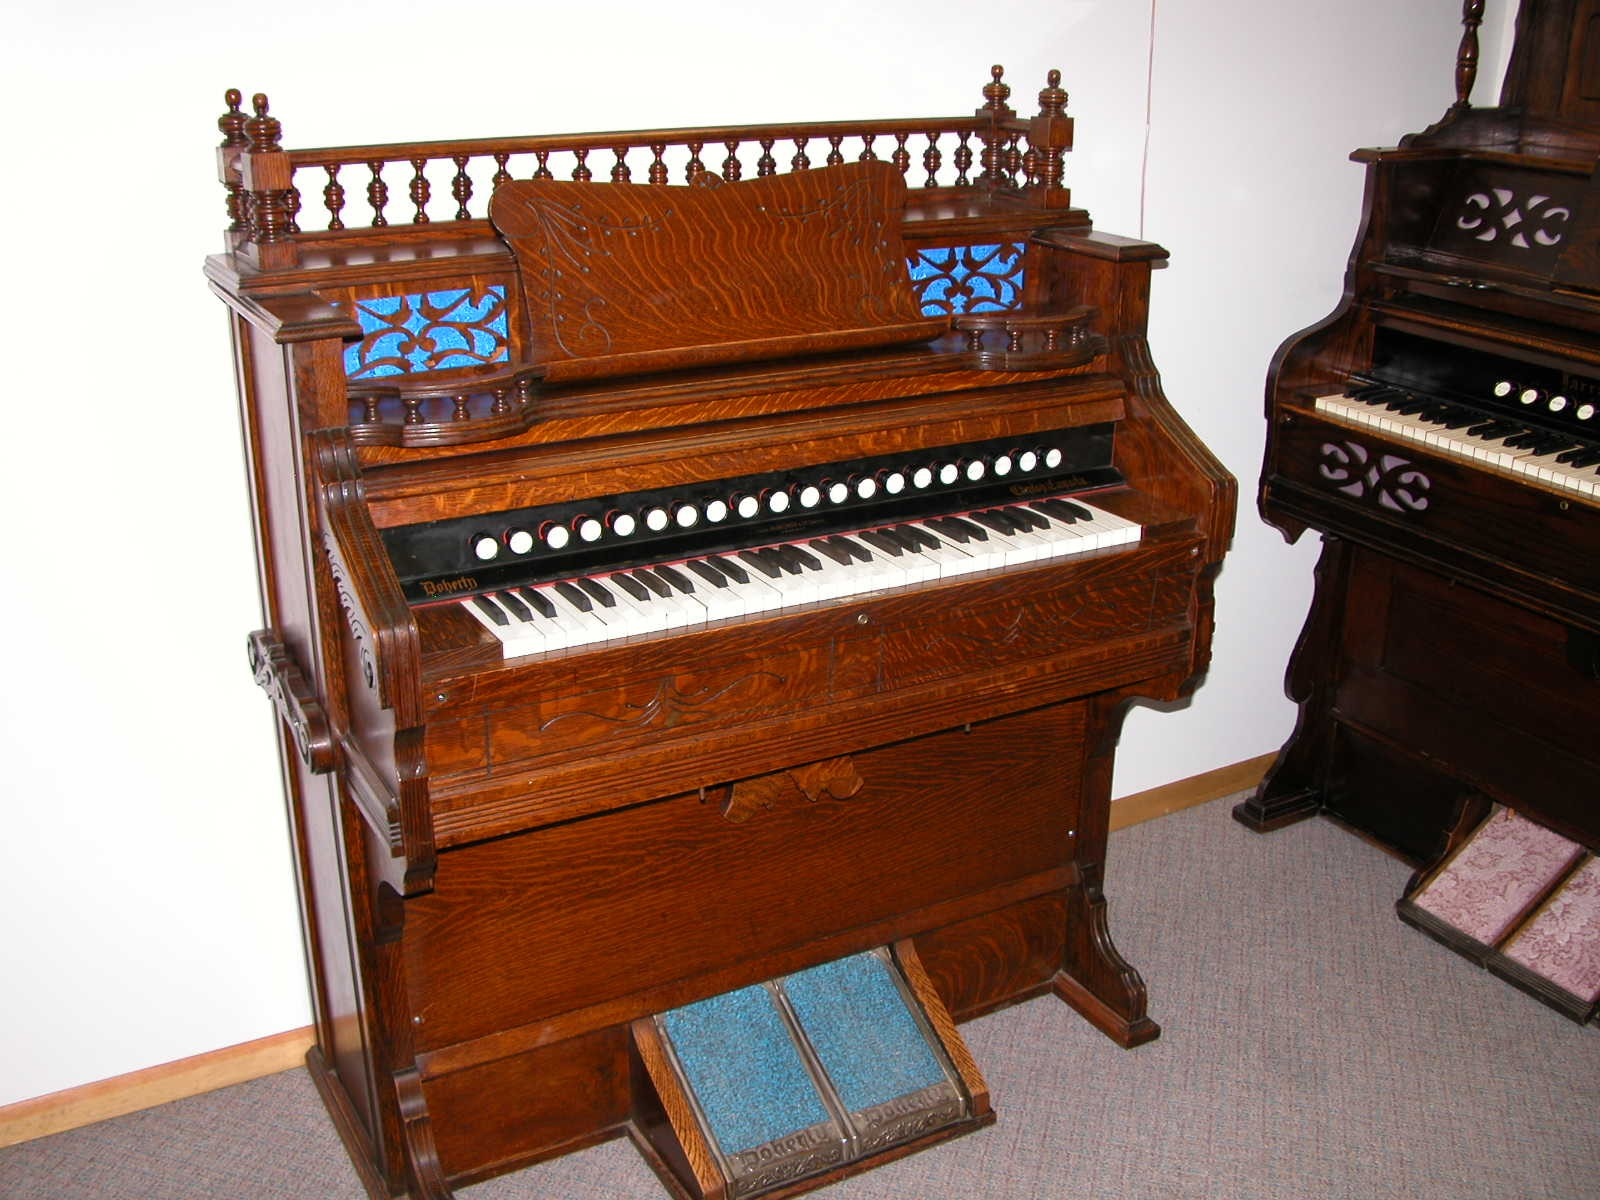 1885 Doherty & Ohewtzeman Organ Co. I. D. No. #21